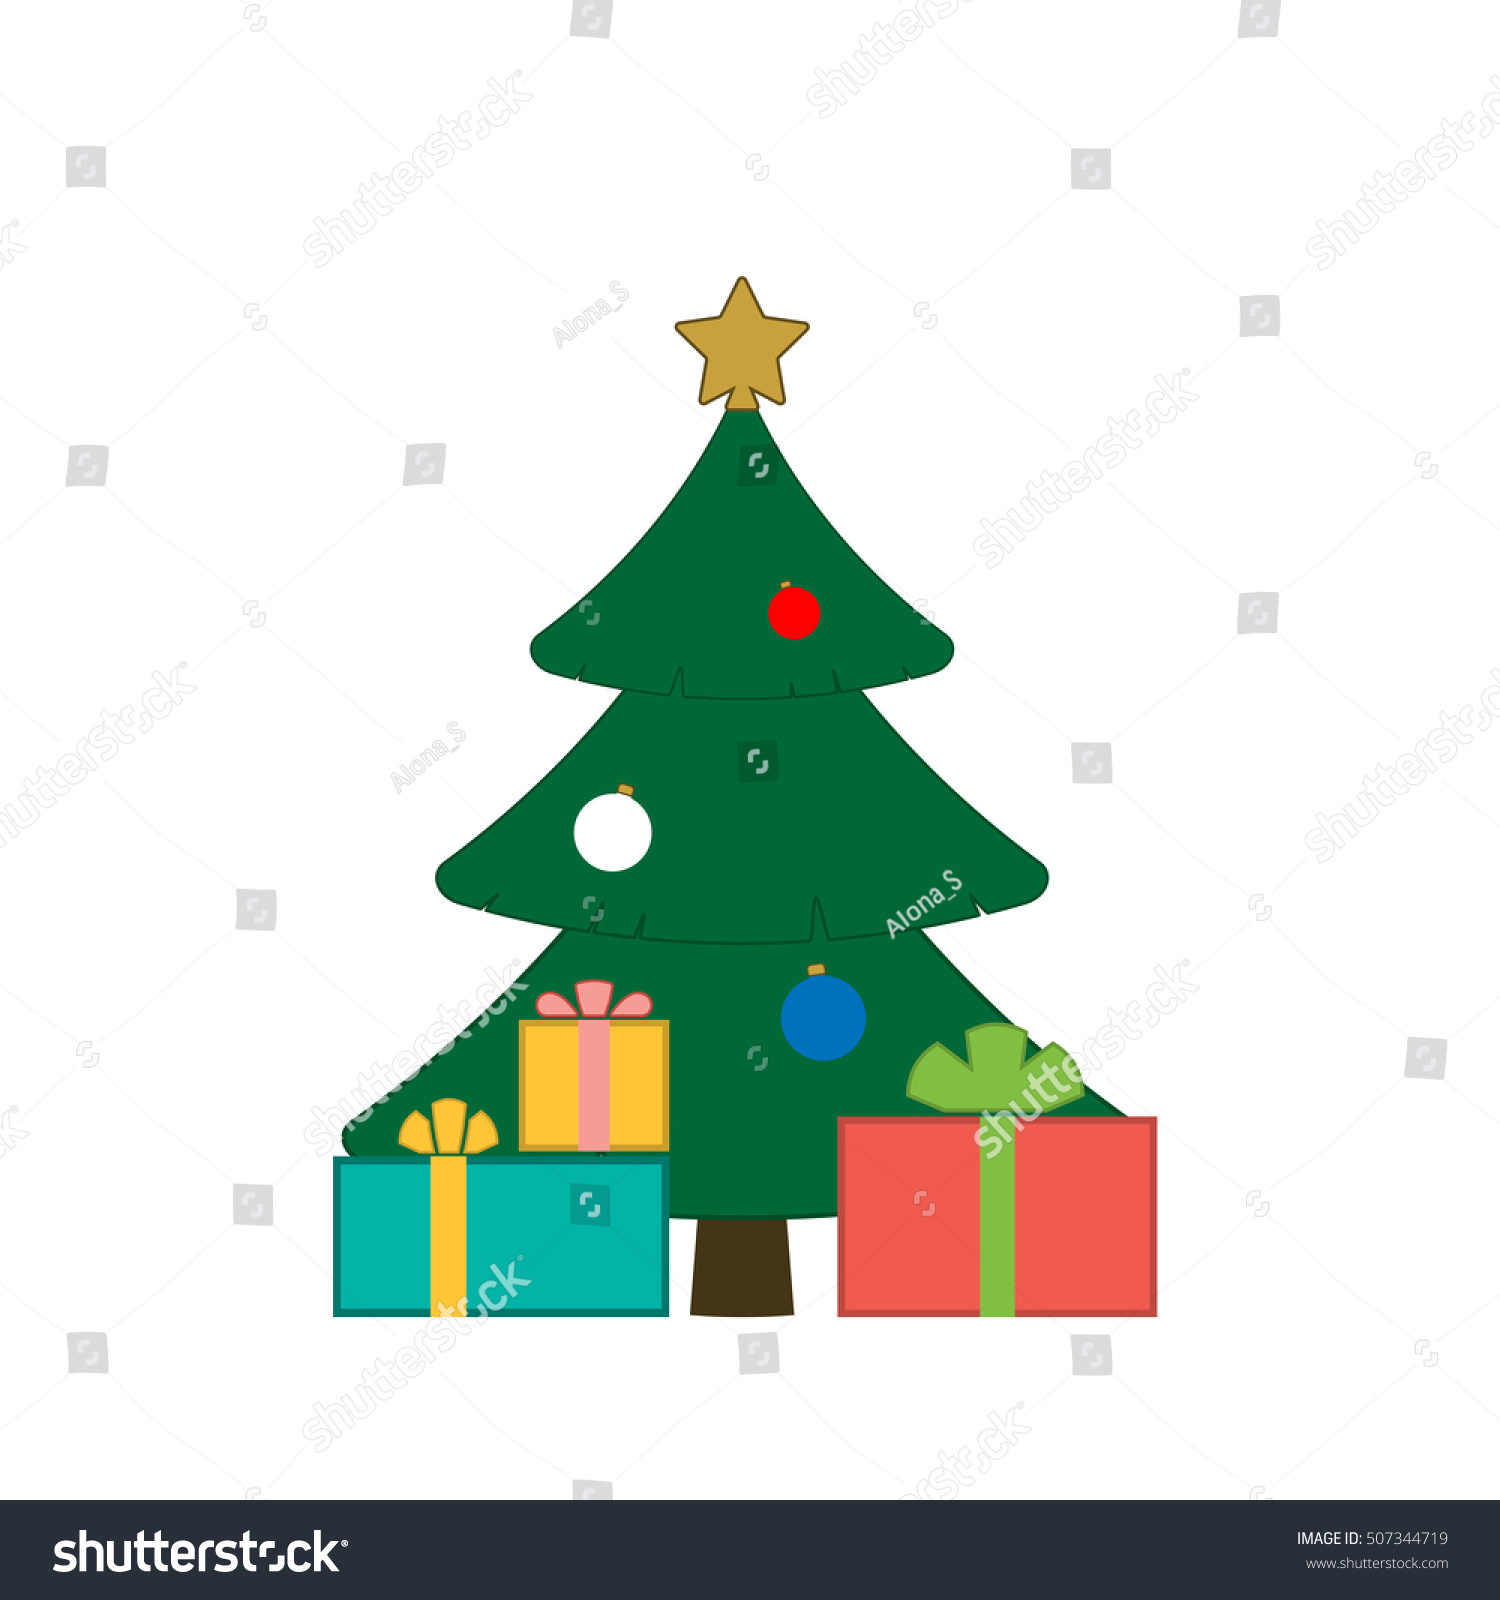 Christmas tree balls star gift cartoon stock vector